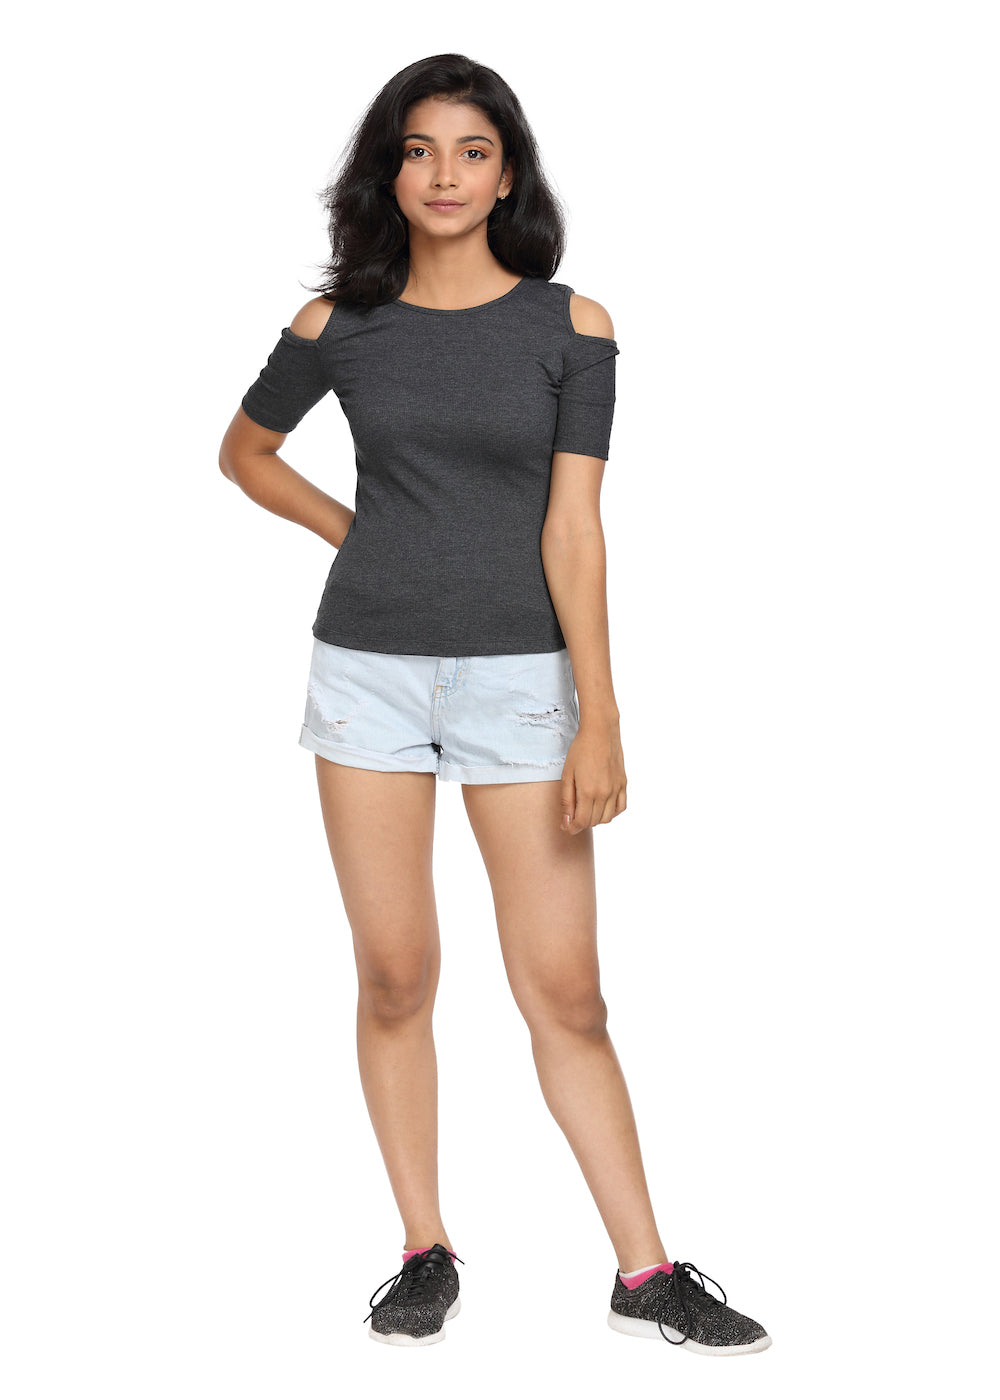 Half Sleeve Ribbed Cold Shoulder Grey Top with a Cross Back - GENZEE